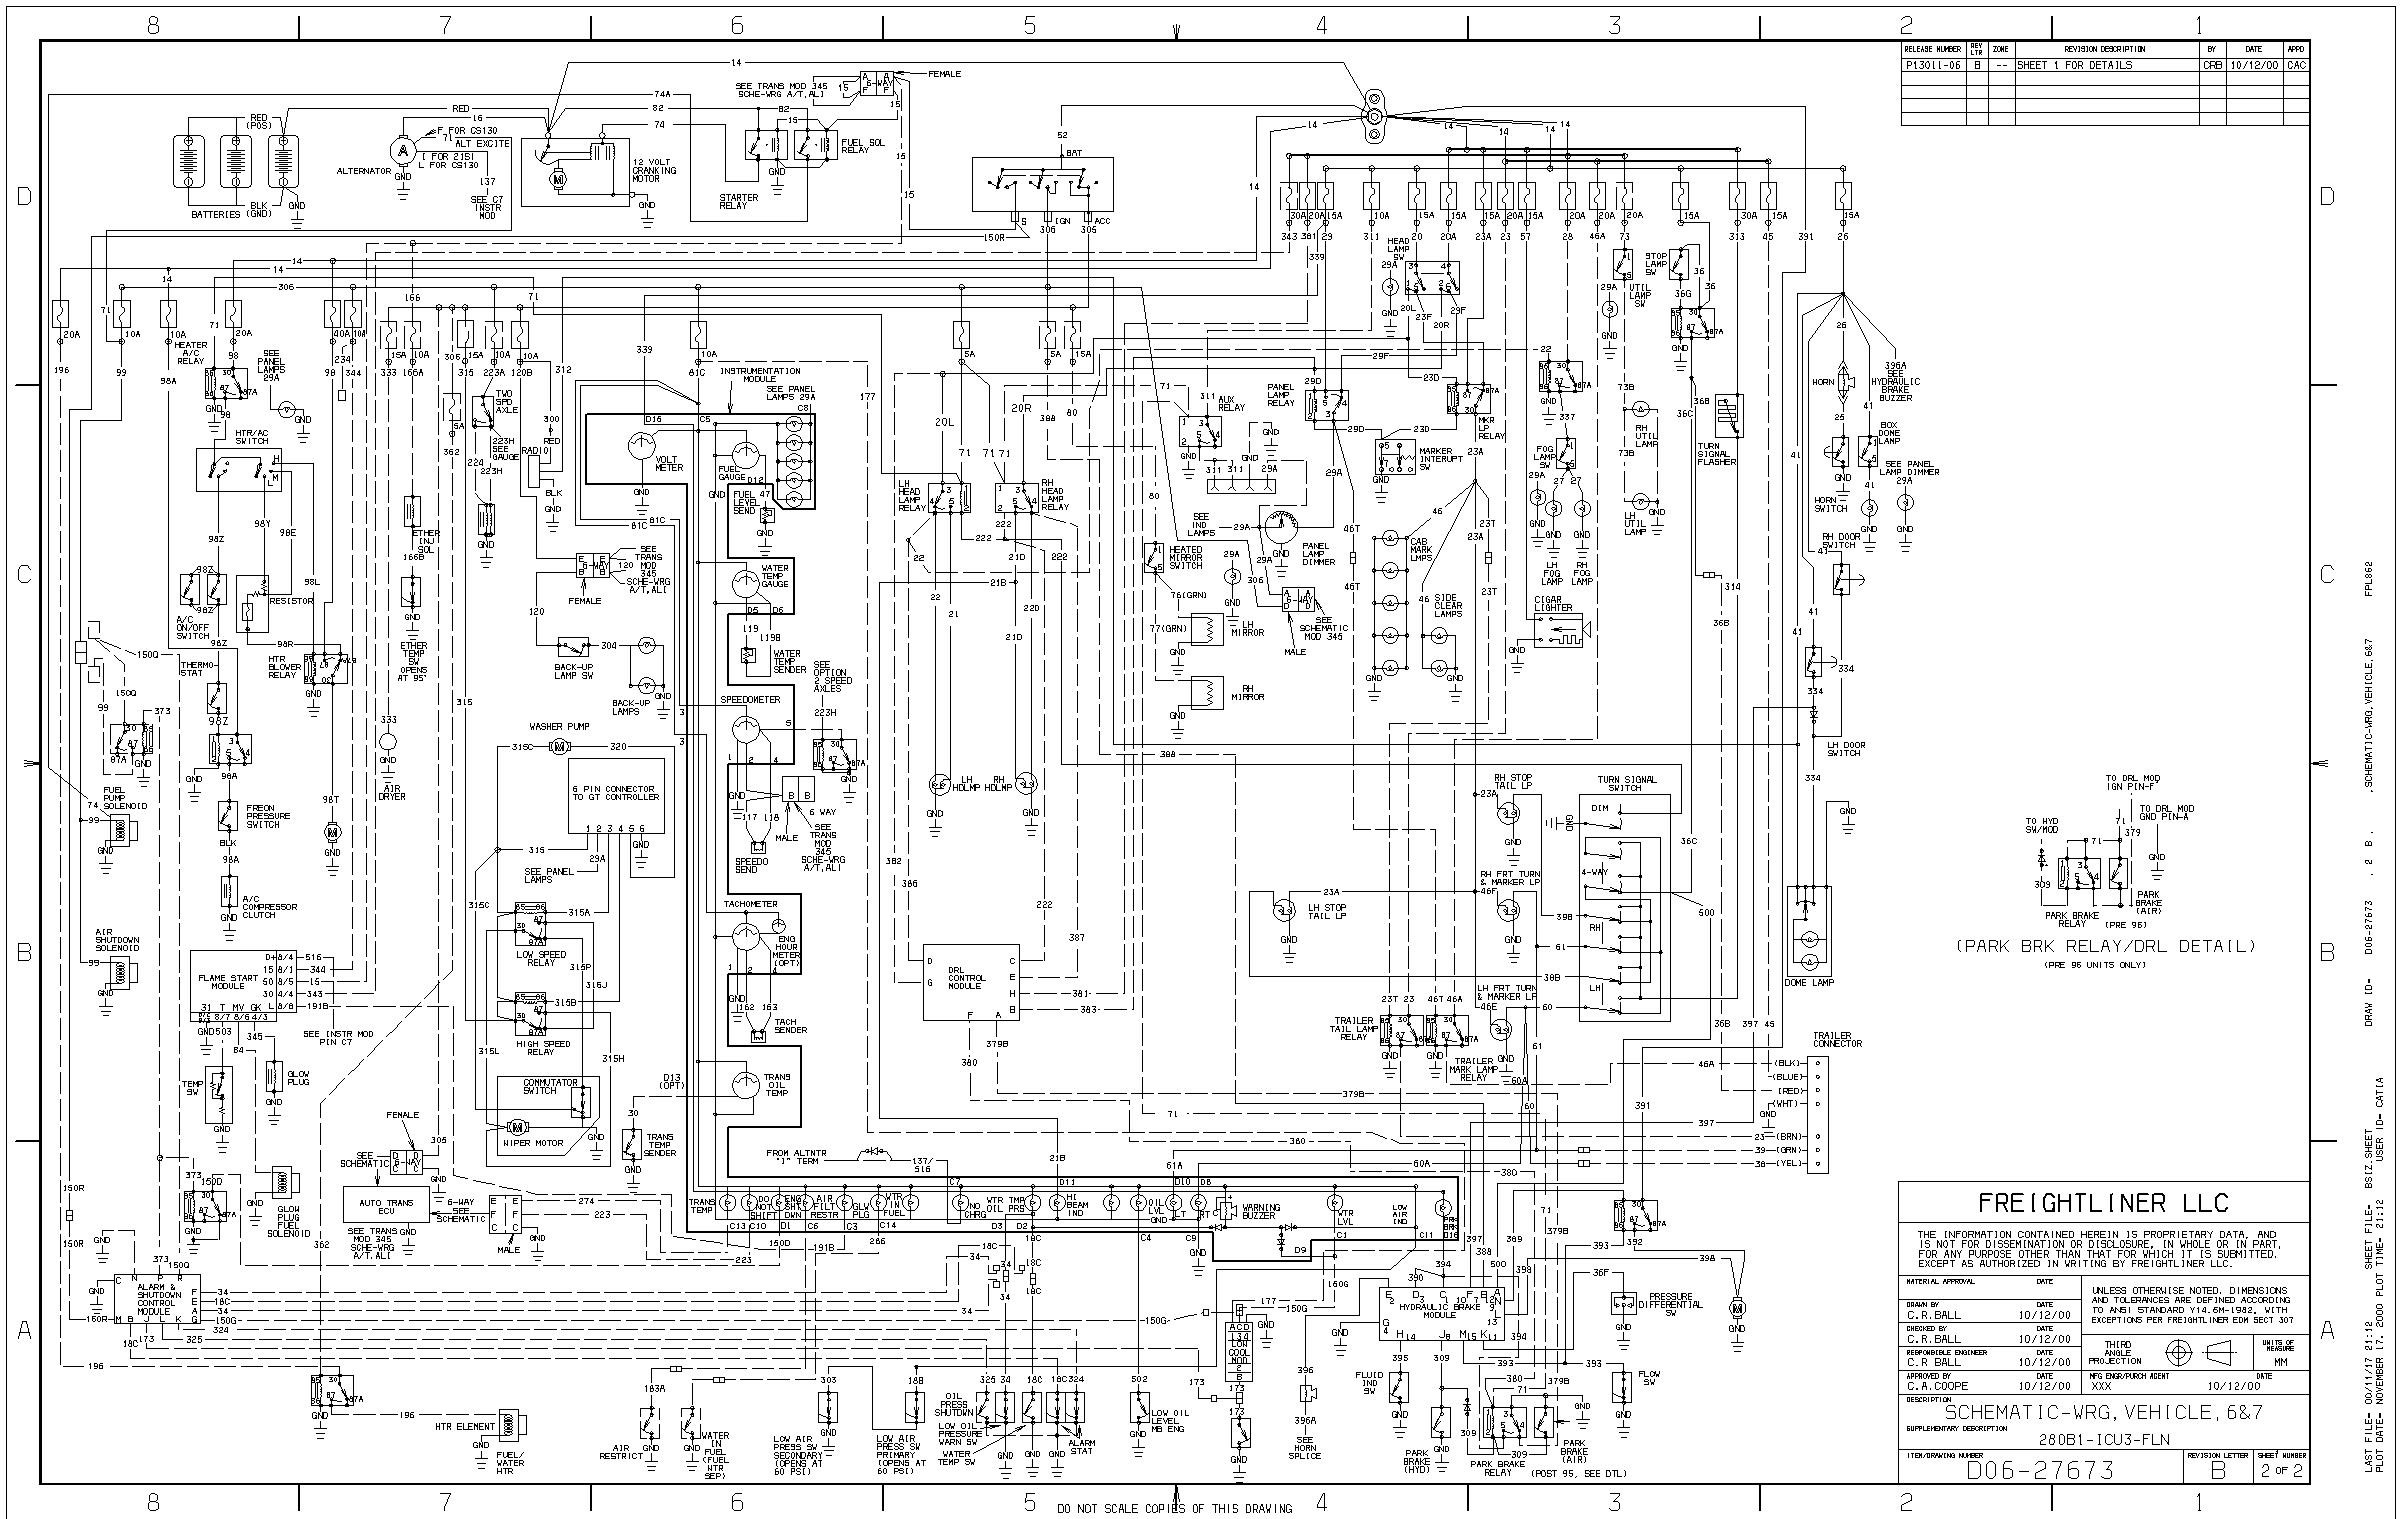 sterling truck wiring diagrams alternator diagram 2000 example wiring sterling 2002 diagram k367630 toyota camry 2007 engine diagram wiring diagram sterling truck rh detoxicrecenze com allison 2000 sterling trucks wiring diagrams allison 2000 sterling